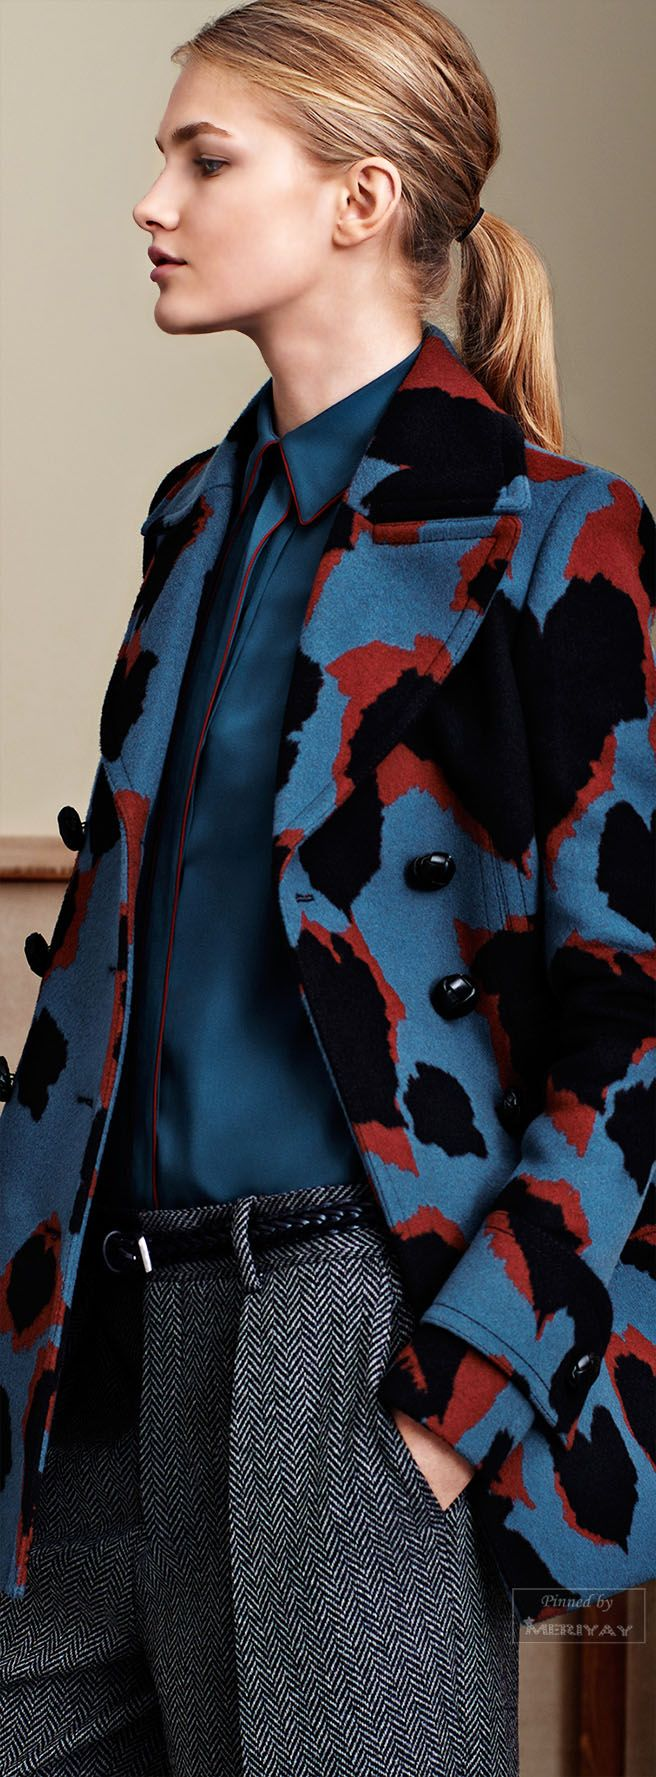 Gucci Pre-Fall 2015 - those are some gorgeous, lush colors in that coat.